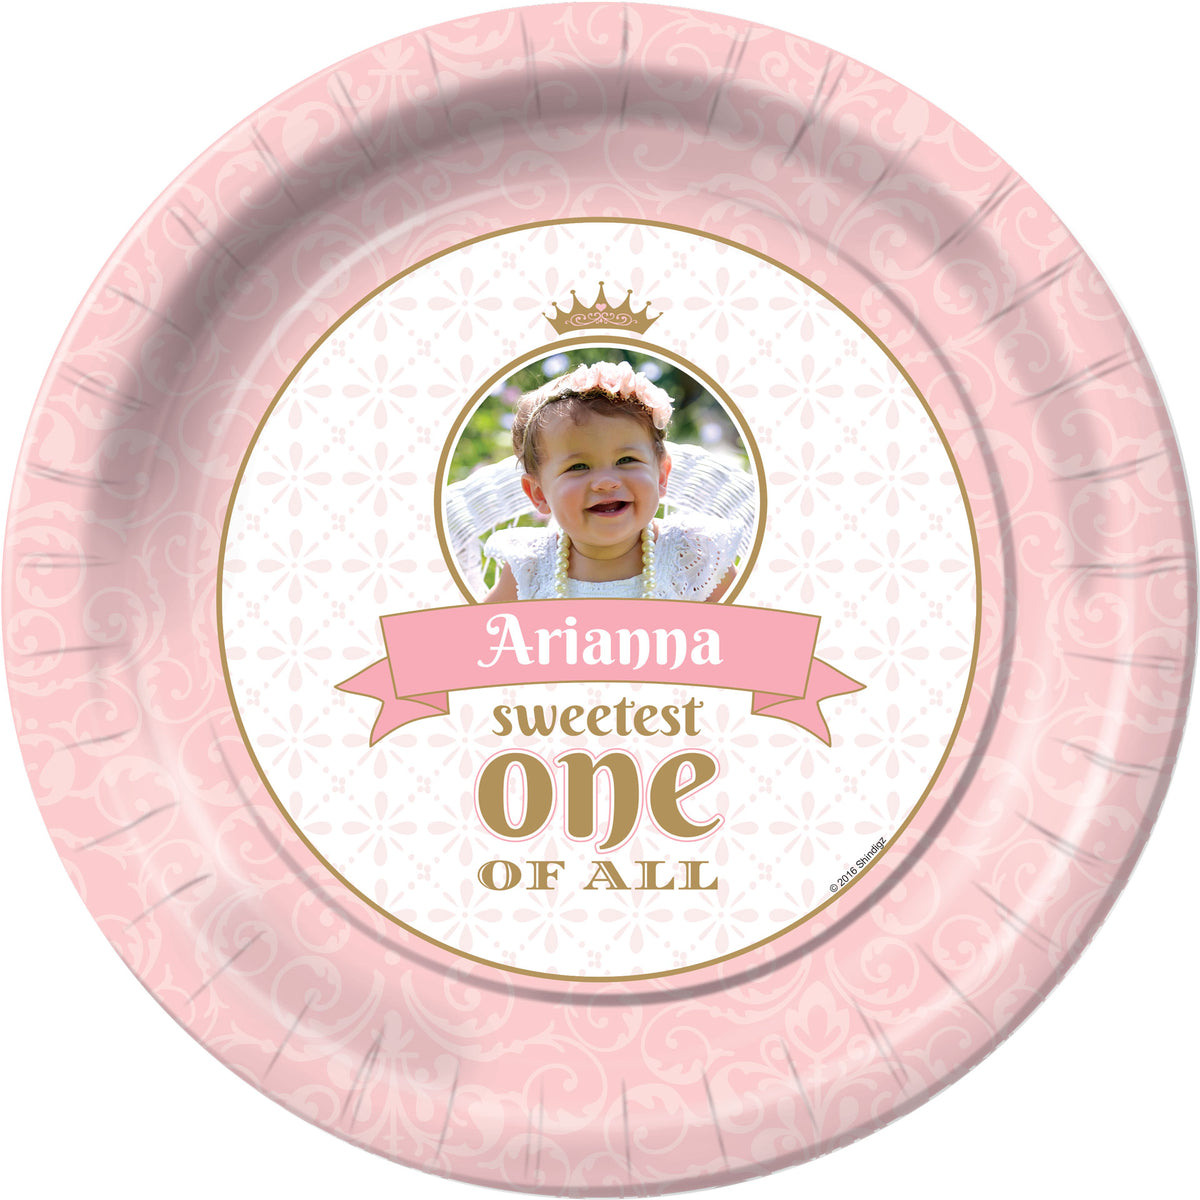 Sweetest 1 of All Personalized Dinner Plates